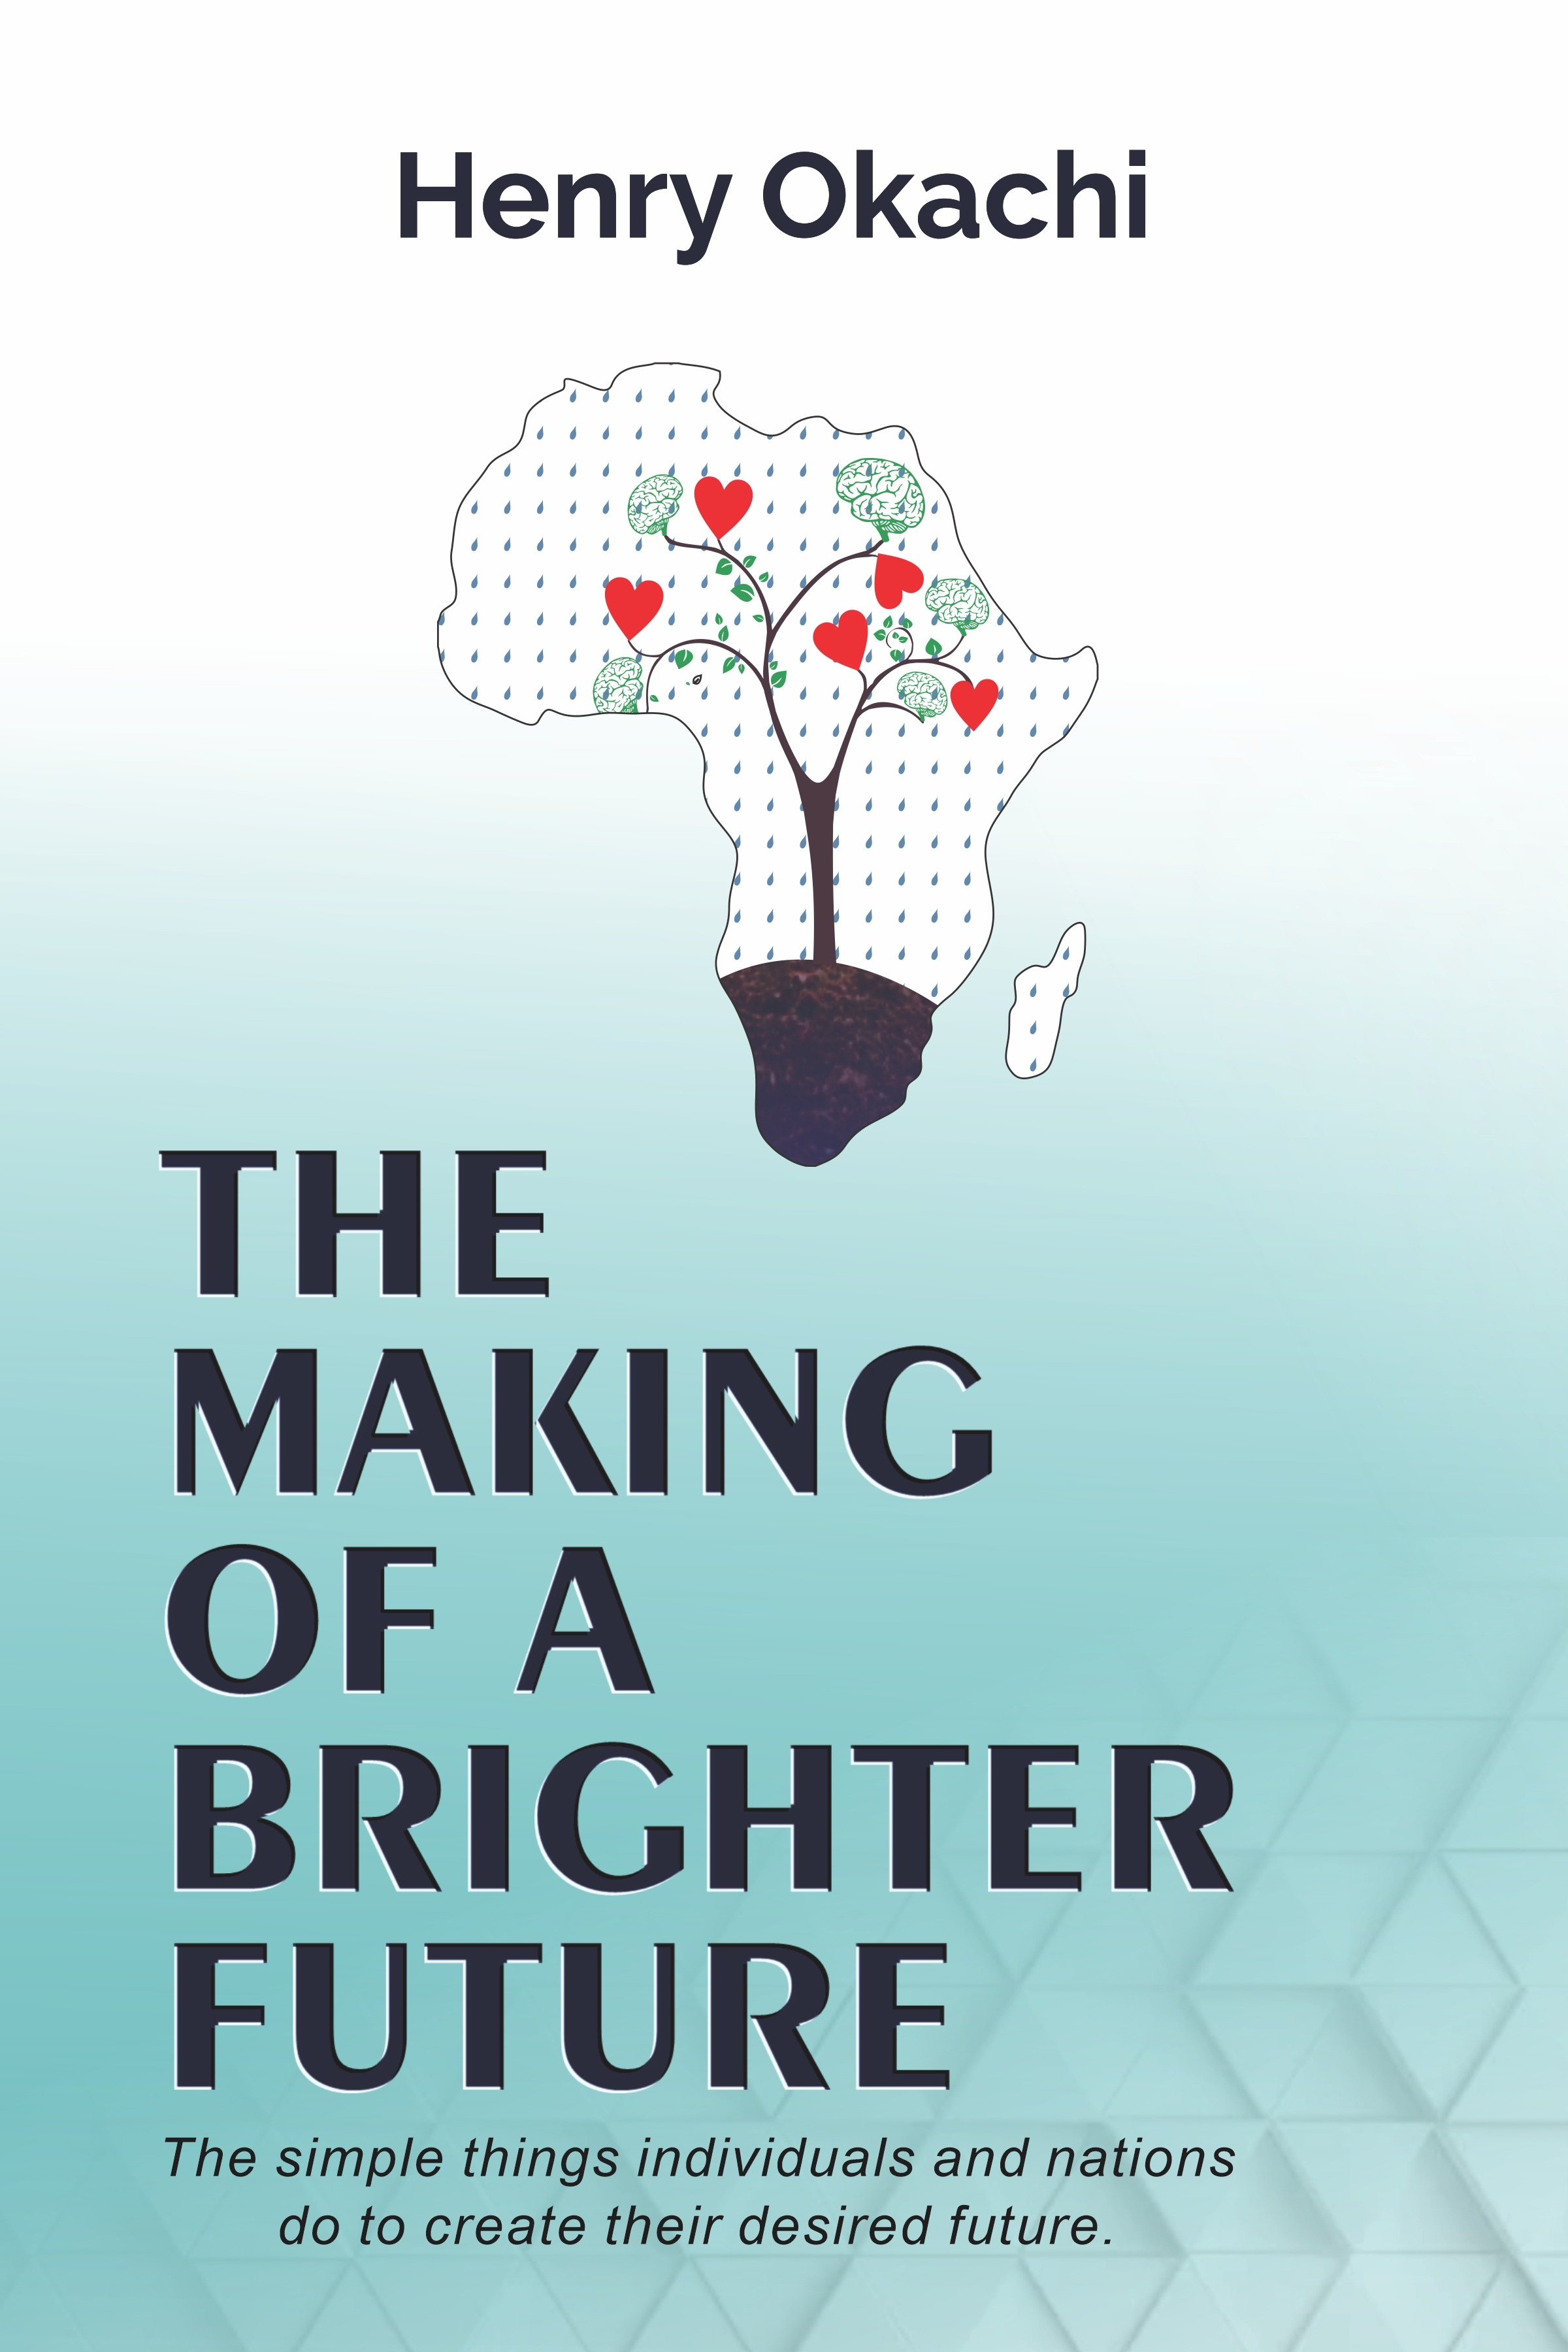 The Making of a Brighter Future